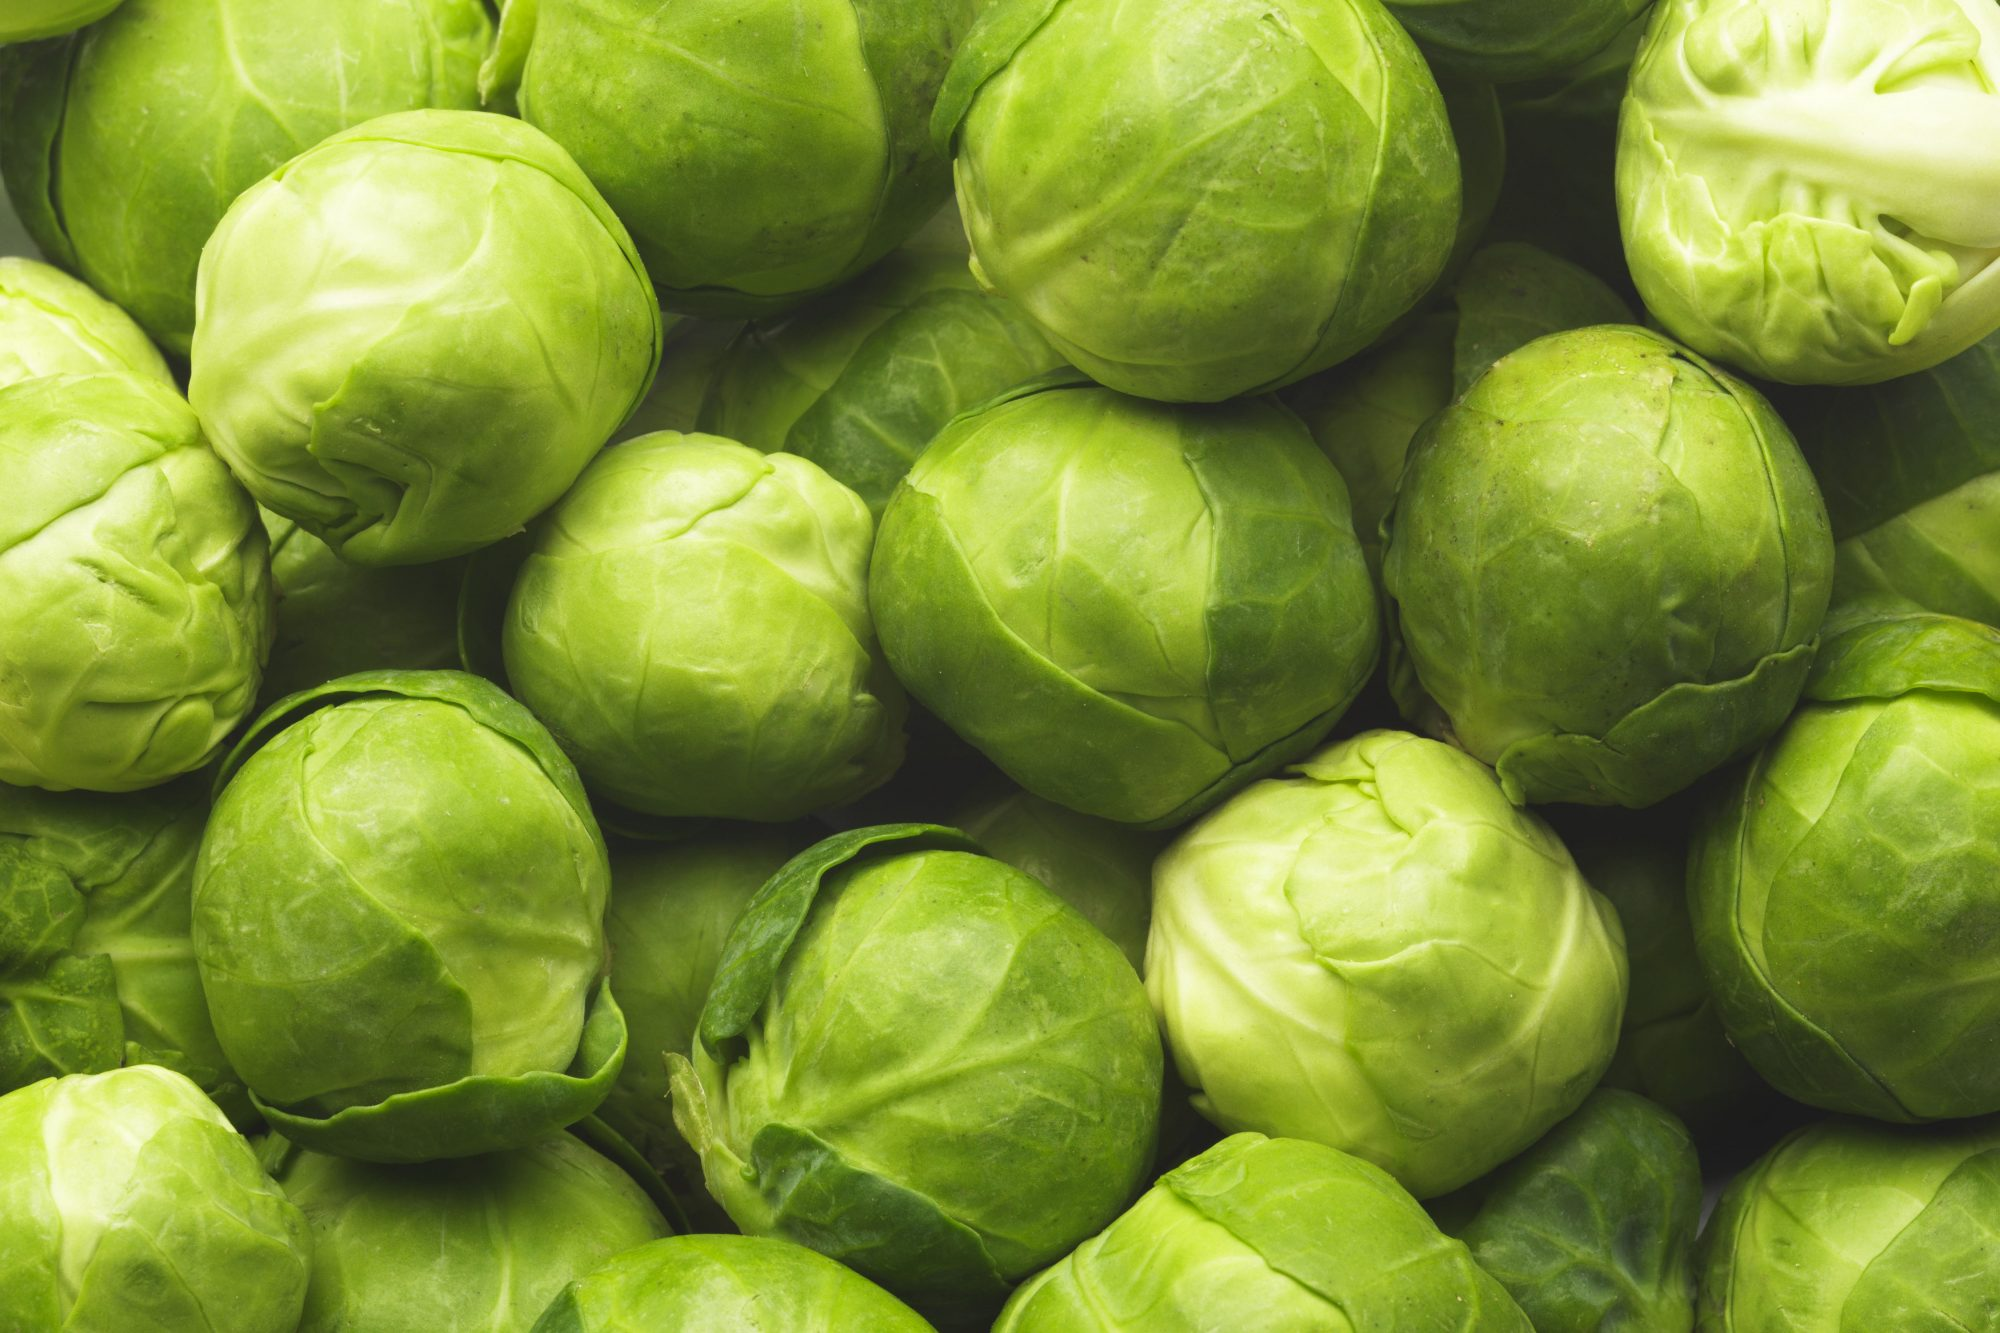 Where Do Brussels Sprouts Get Their Name?